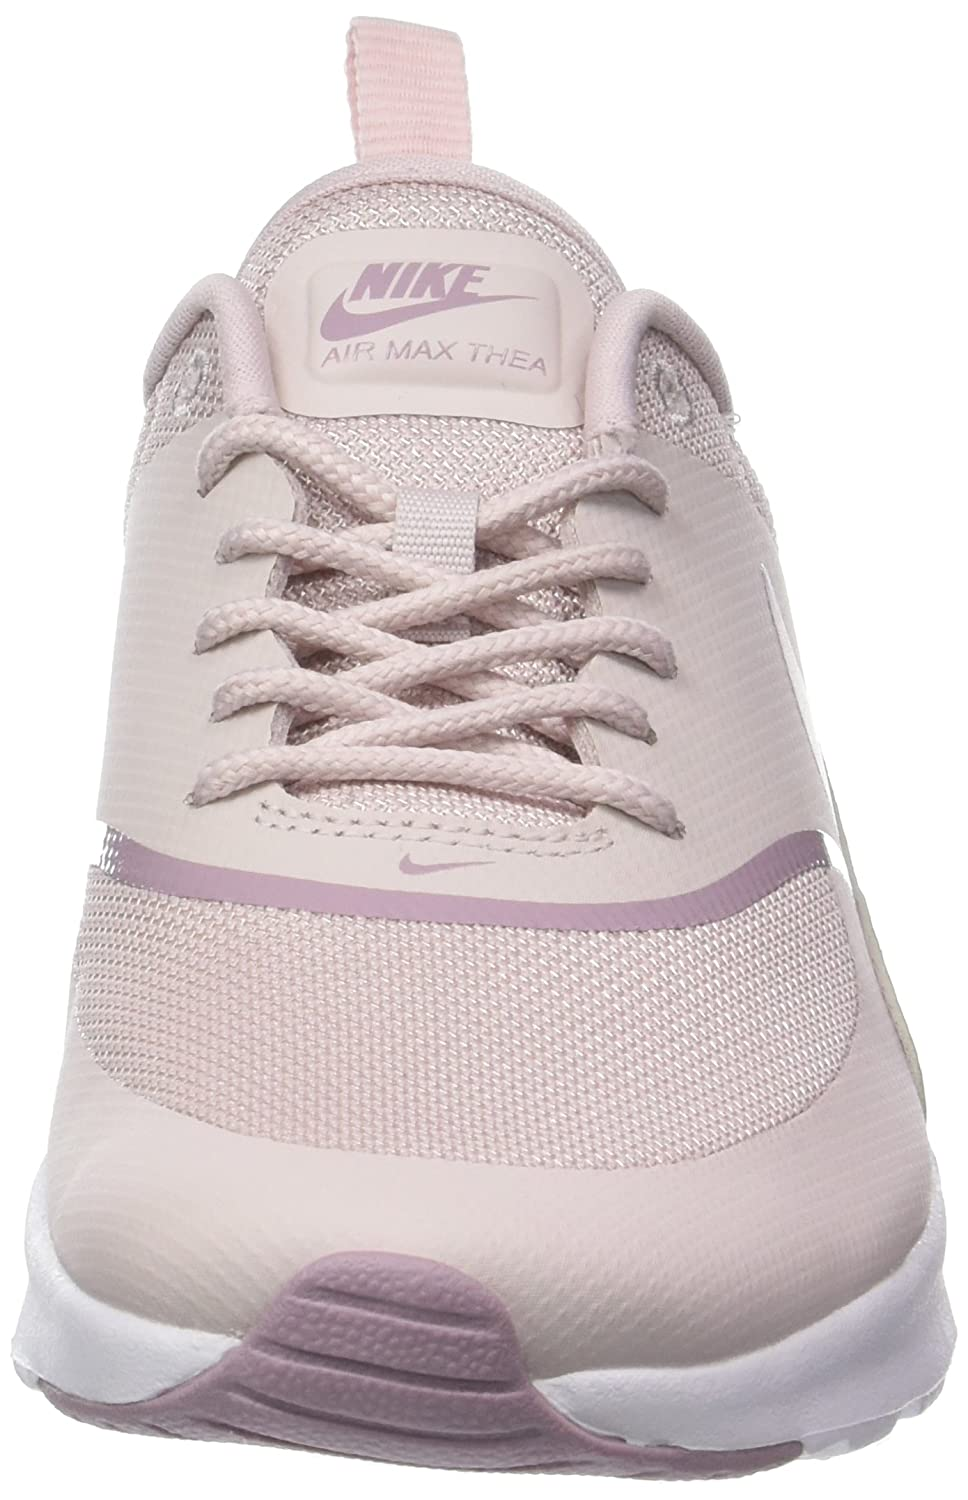 Details about Nike Air Max Thea Barely Rose UK Size 4.5 599409 612